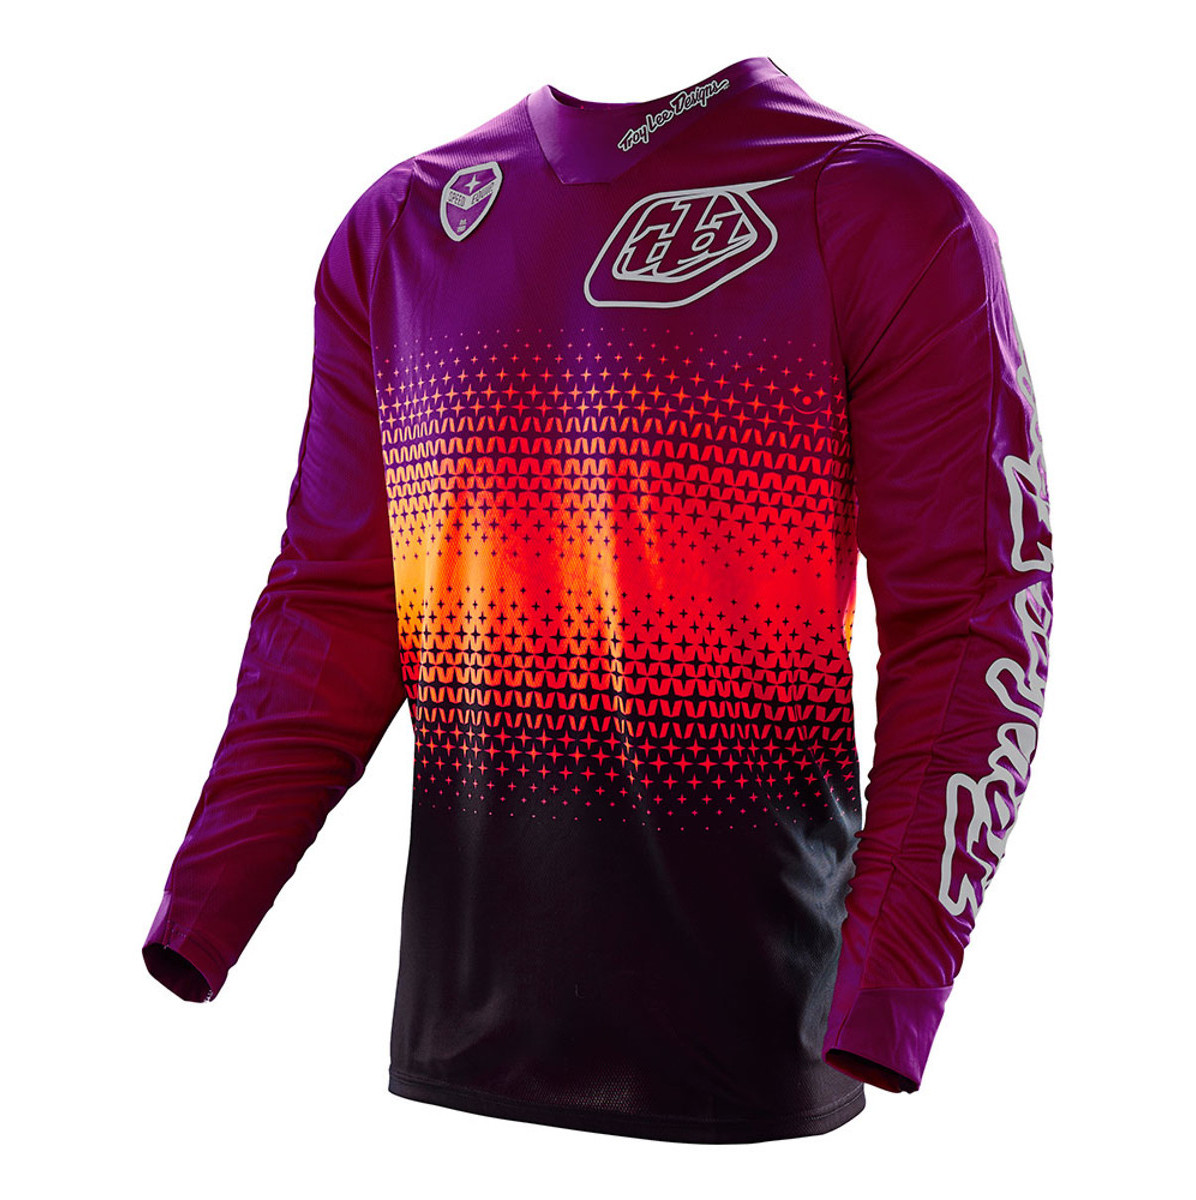 Troy Lee Designs SE Starburst Jersey & Pant  Troy Lee Designs SE Starburst Black and Purple